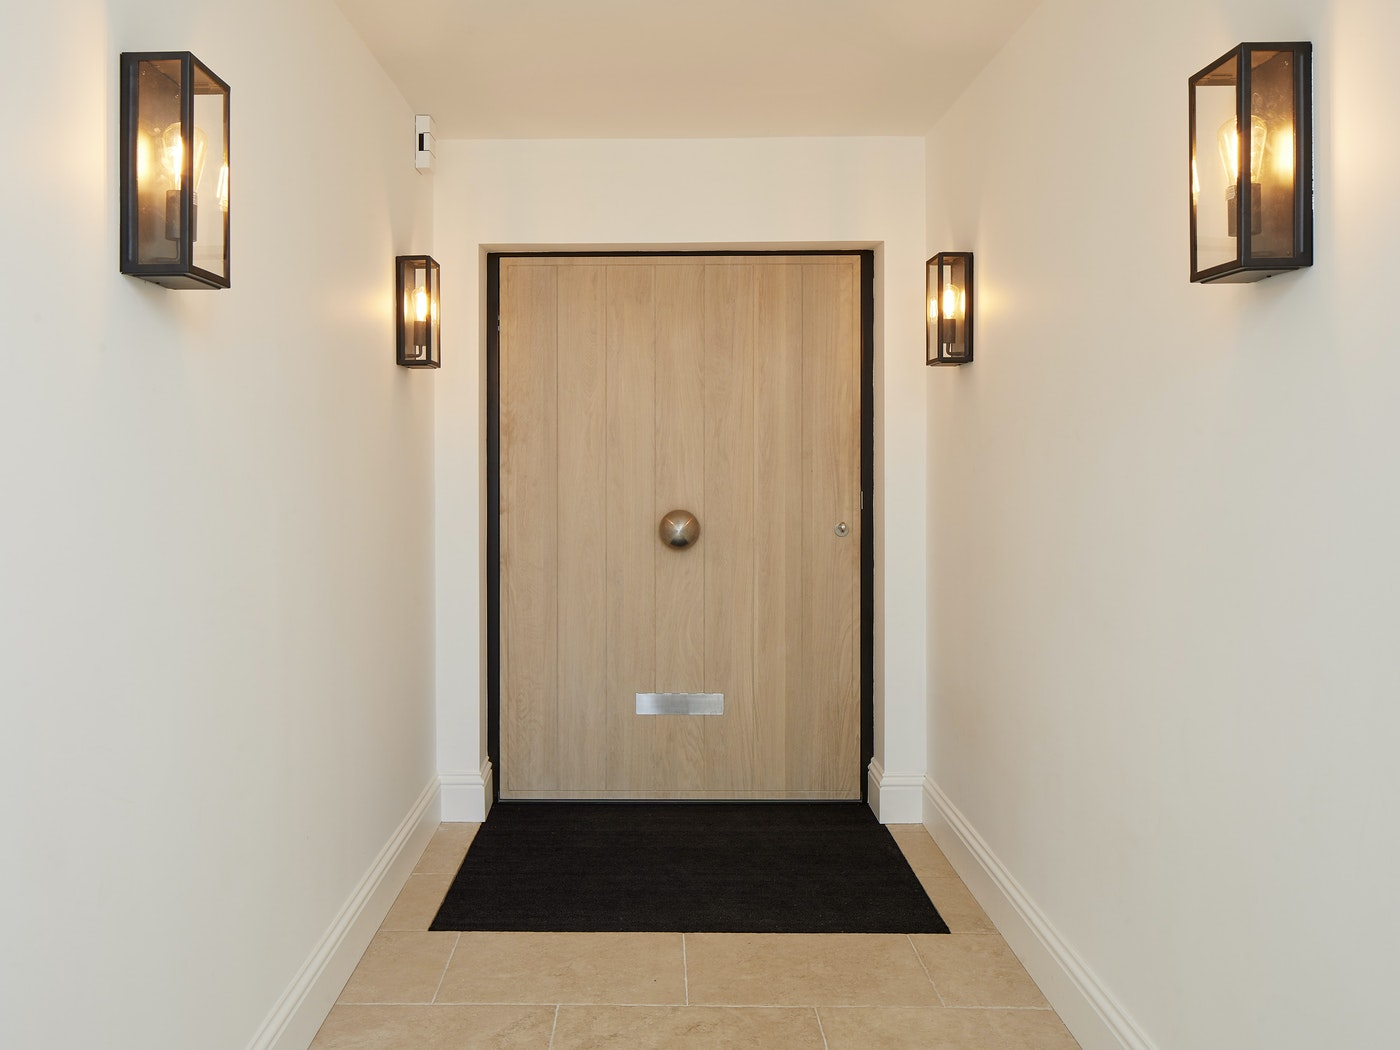 A big oak door that is no less eye-catching from the inside view